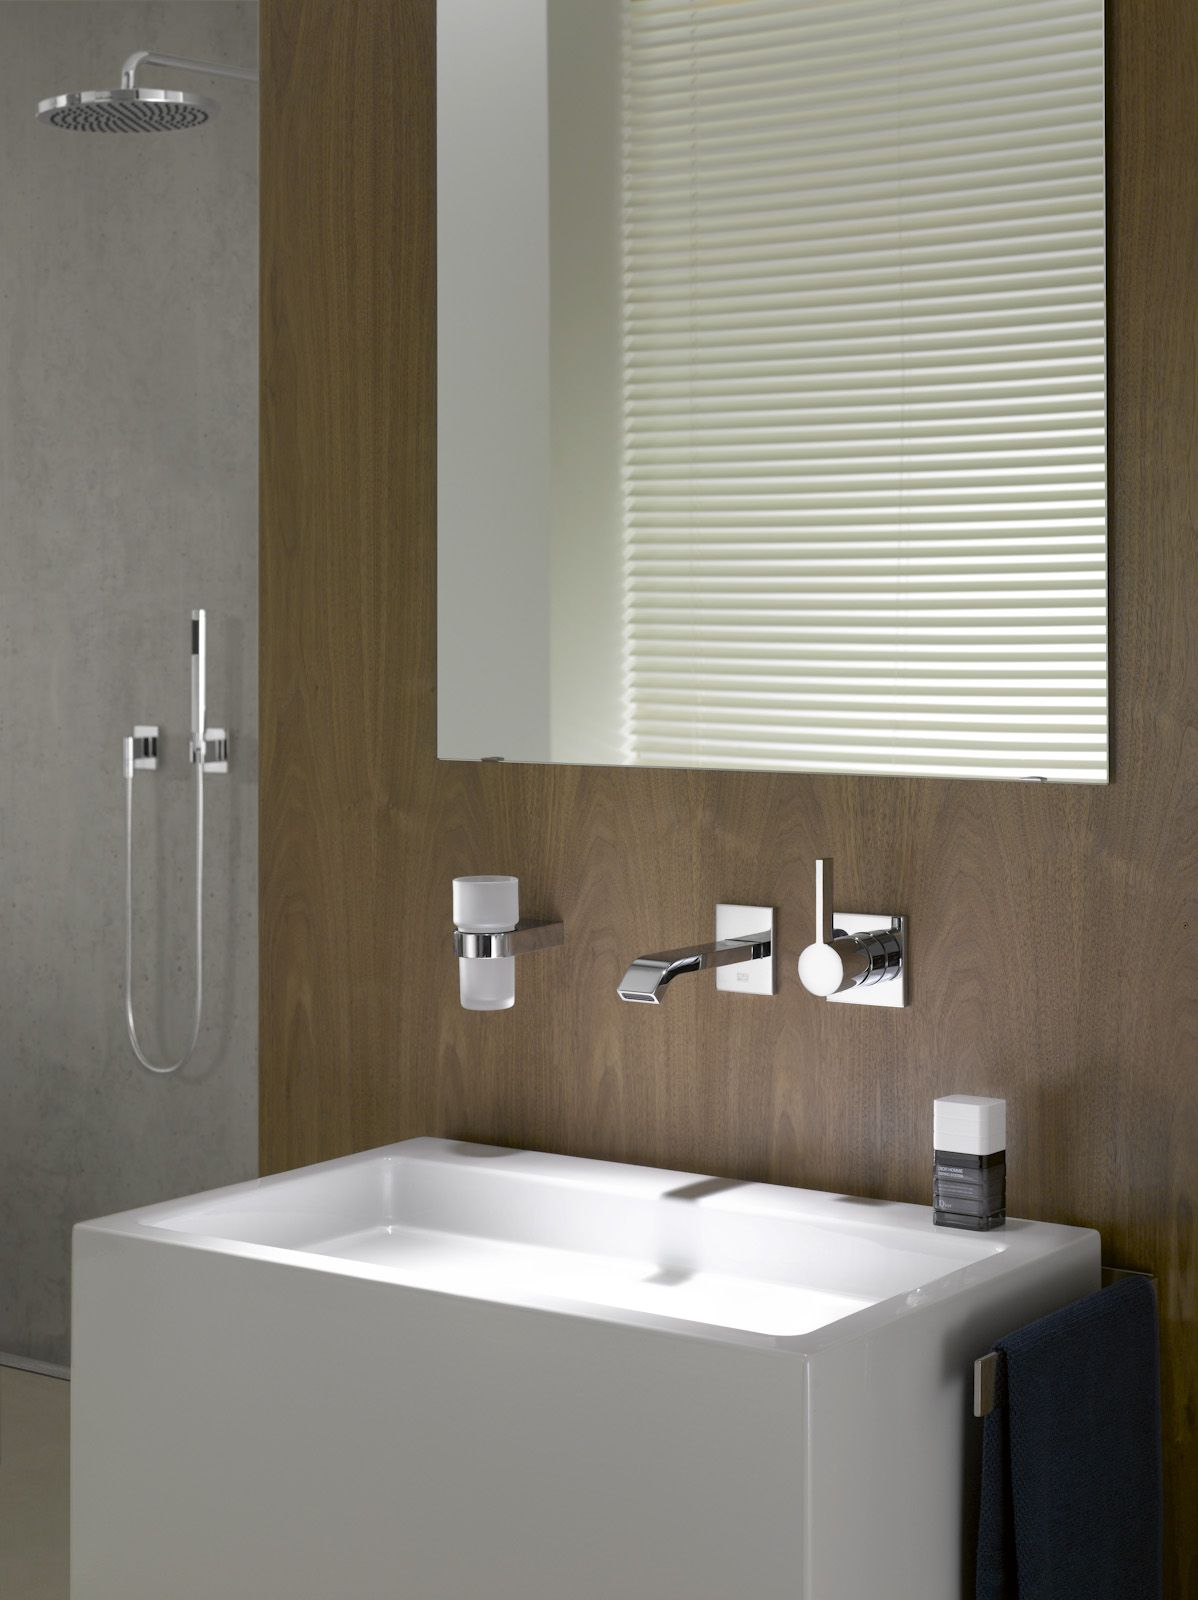 IMO / Bath & Spa / Fitting / Dornbracht | Bath Faucets | Pinterest ...